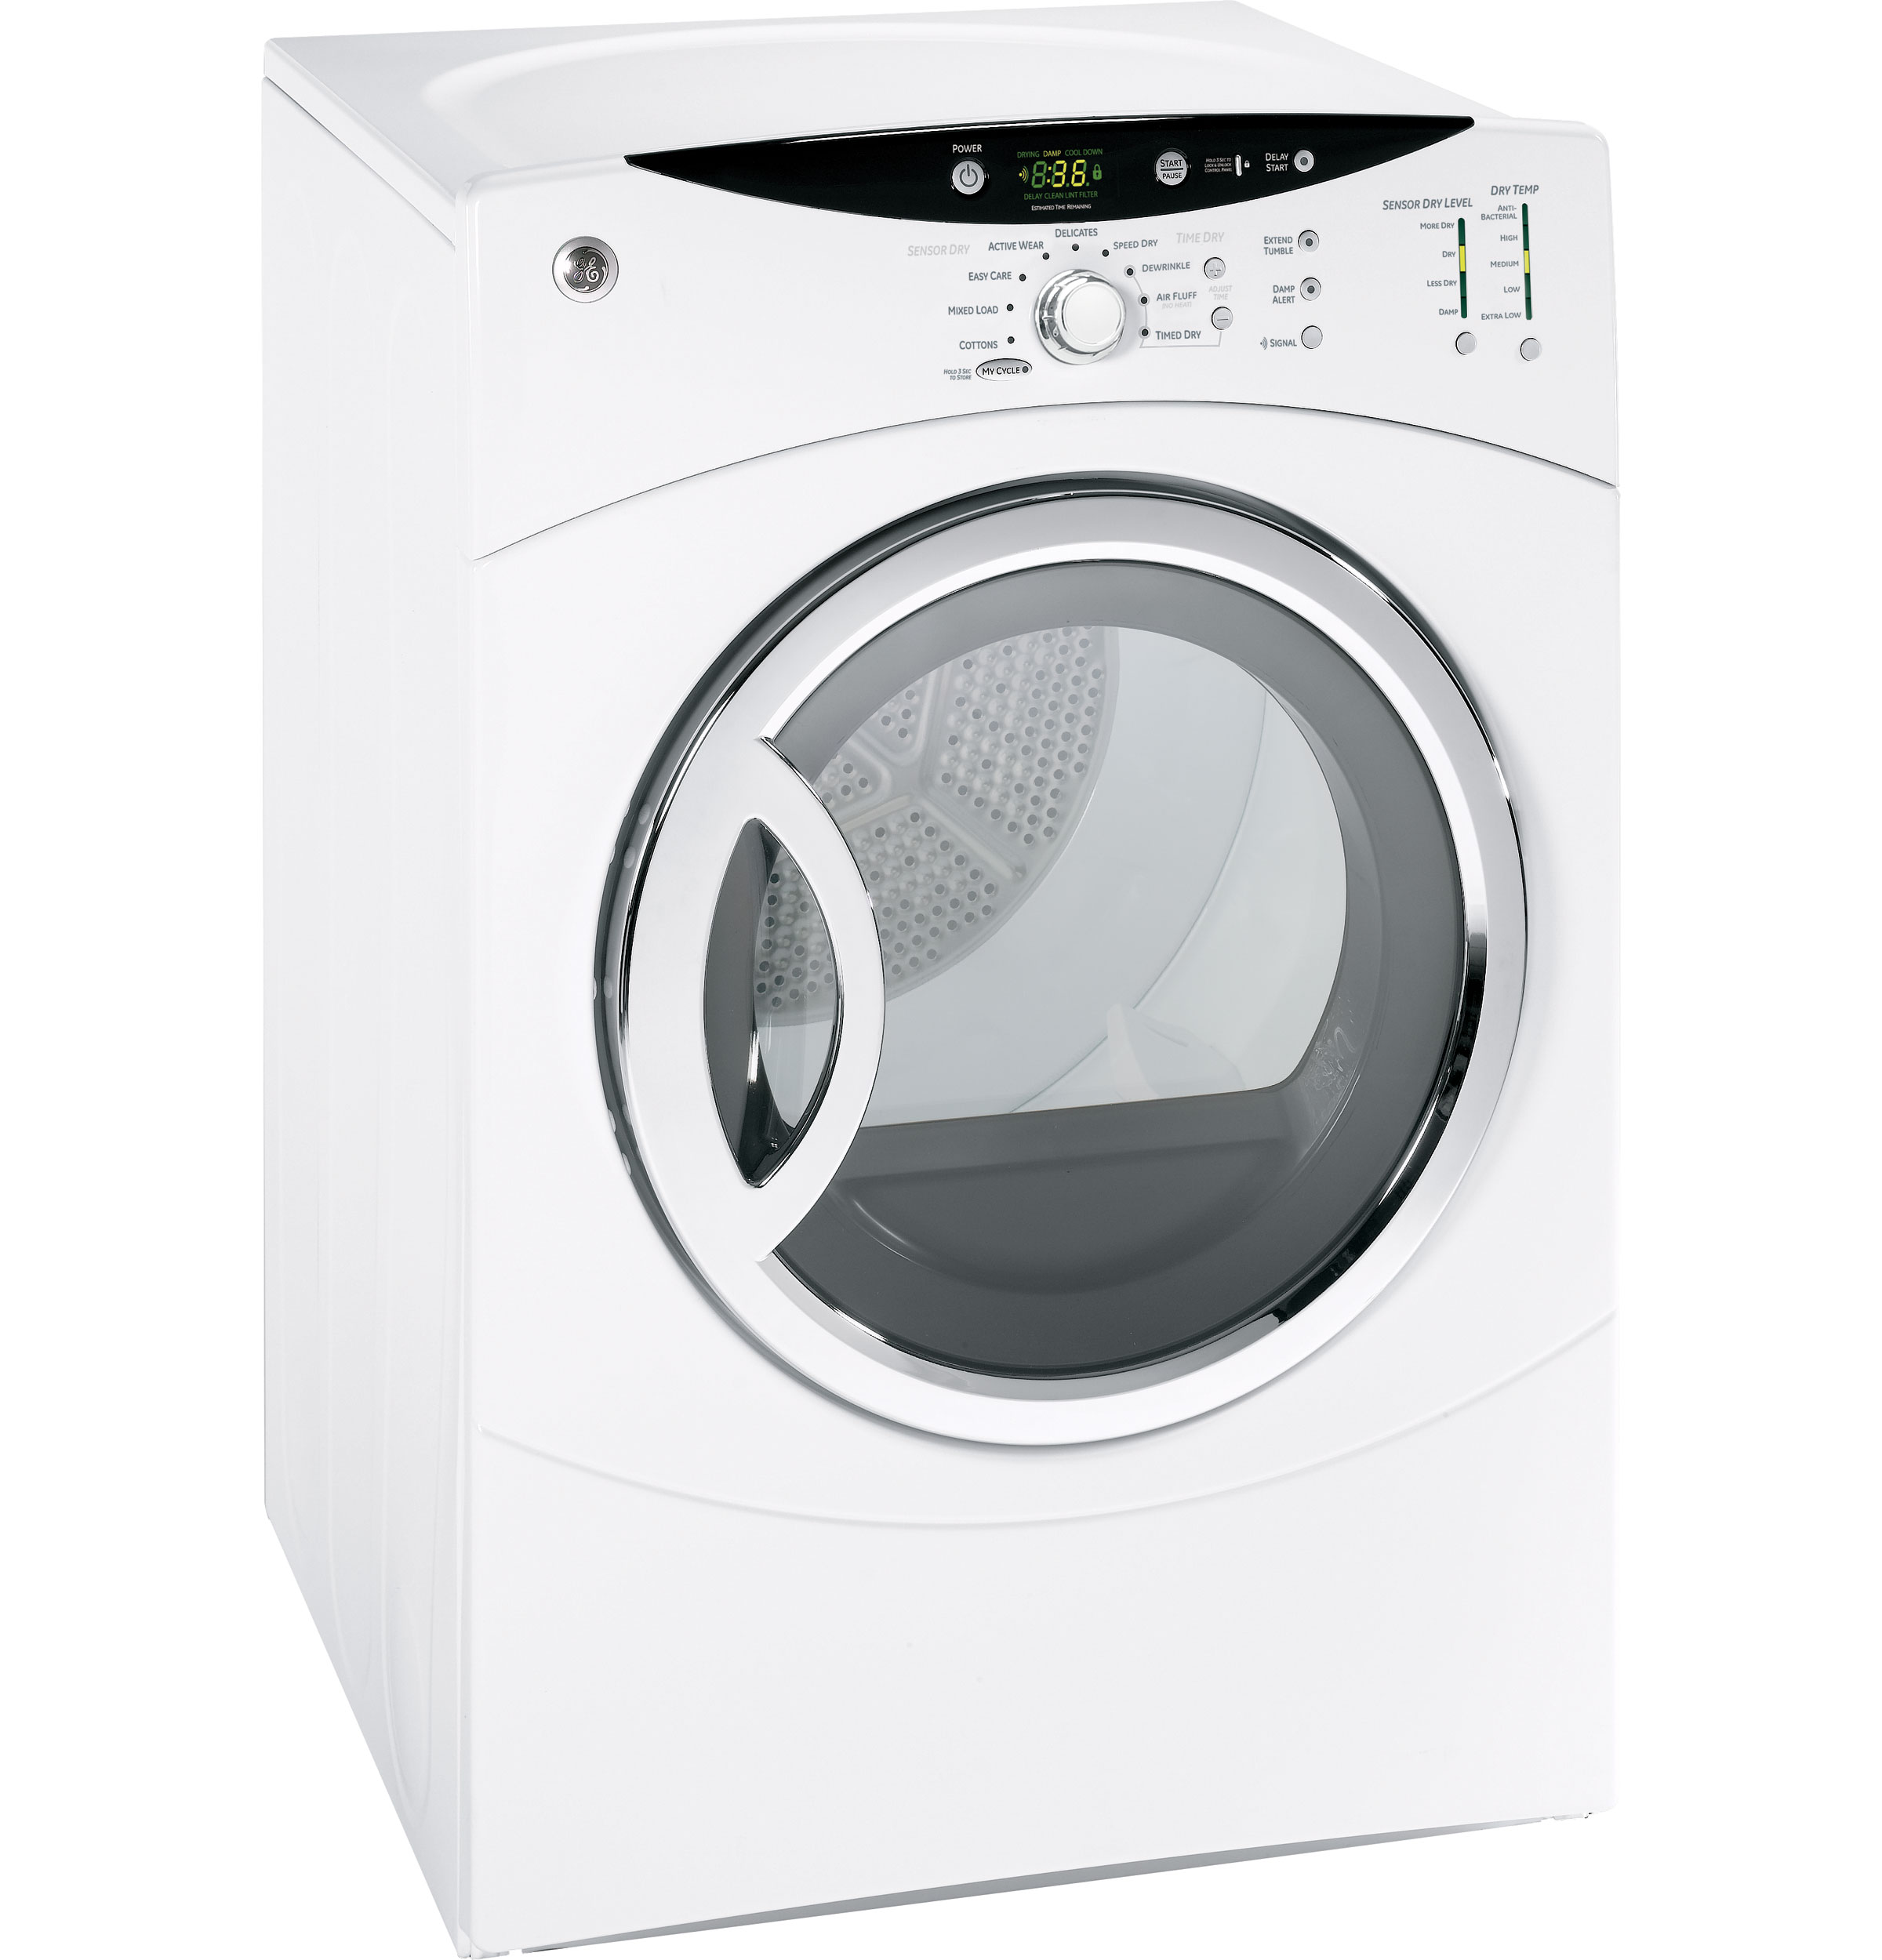 Gas Washers And Dryers Gear 70 Cuft Super Capacity Gas Dryer Dcvh680gjww Ge Appliances